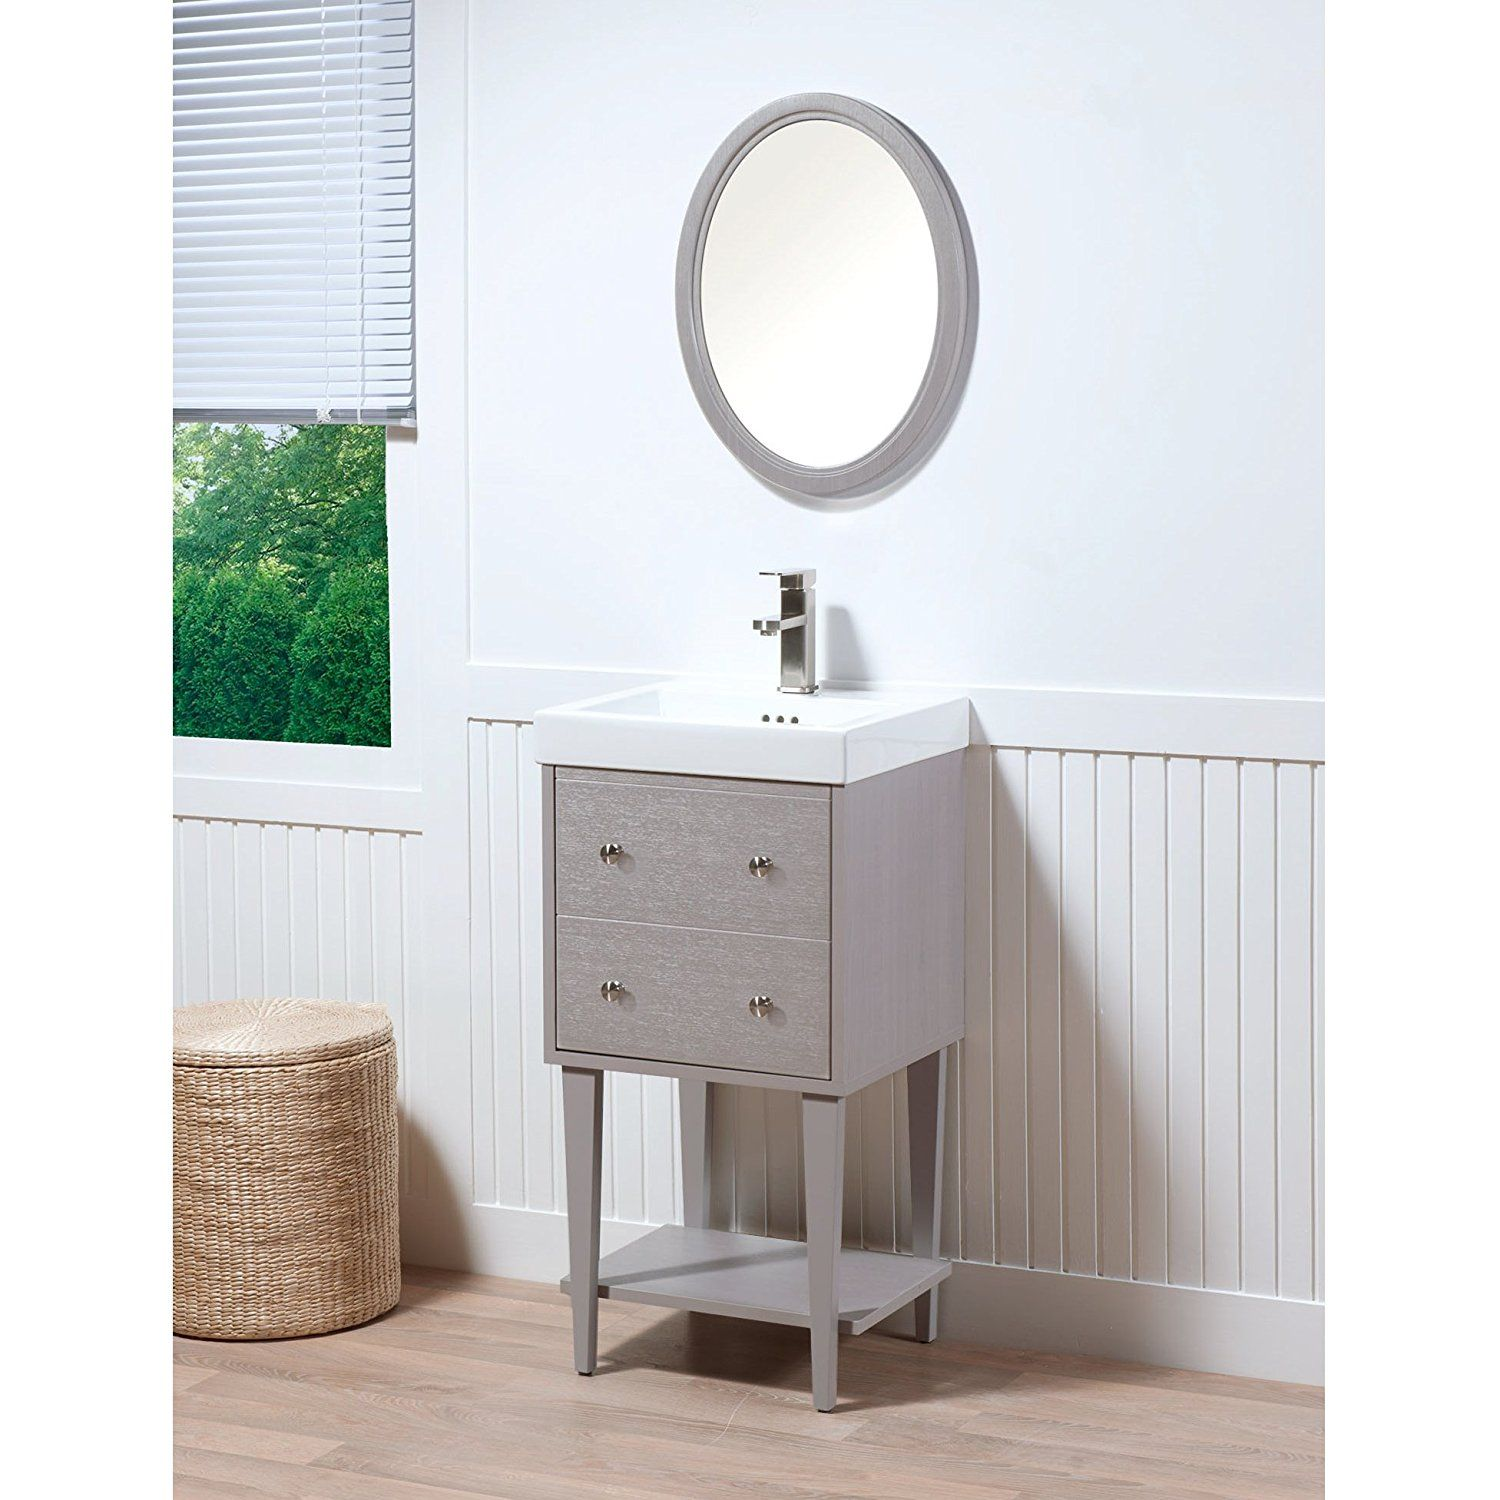 maykke fawn 19 inch bathroom vanity set in birch wood drift